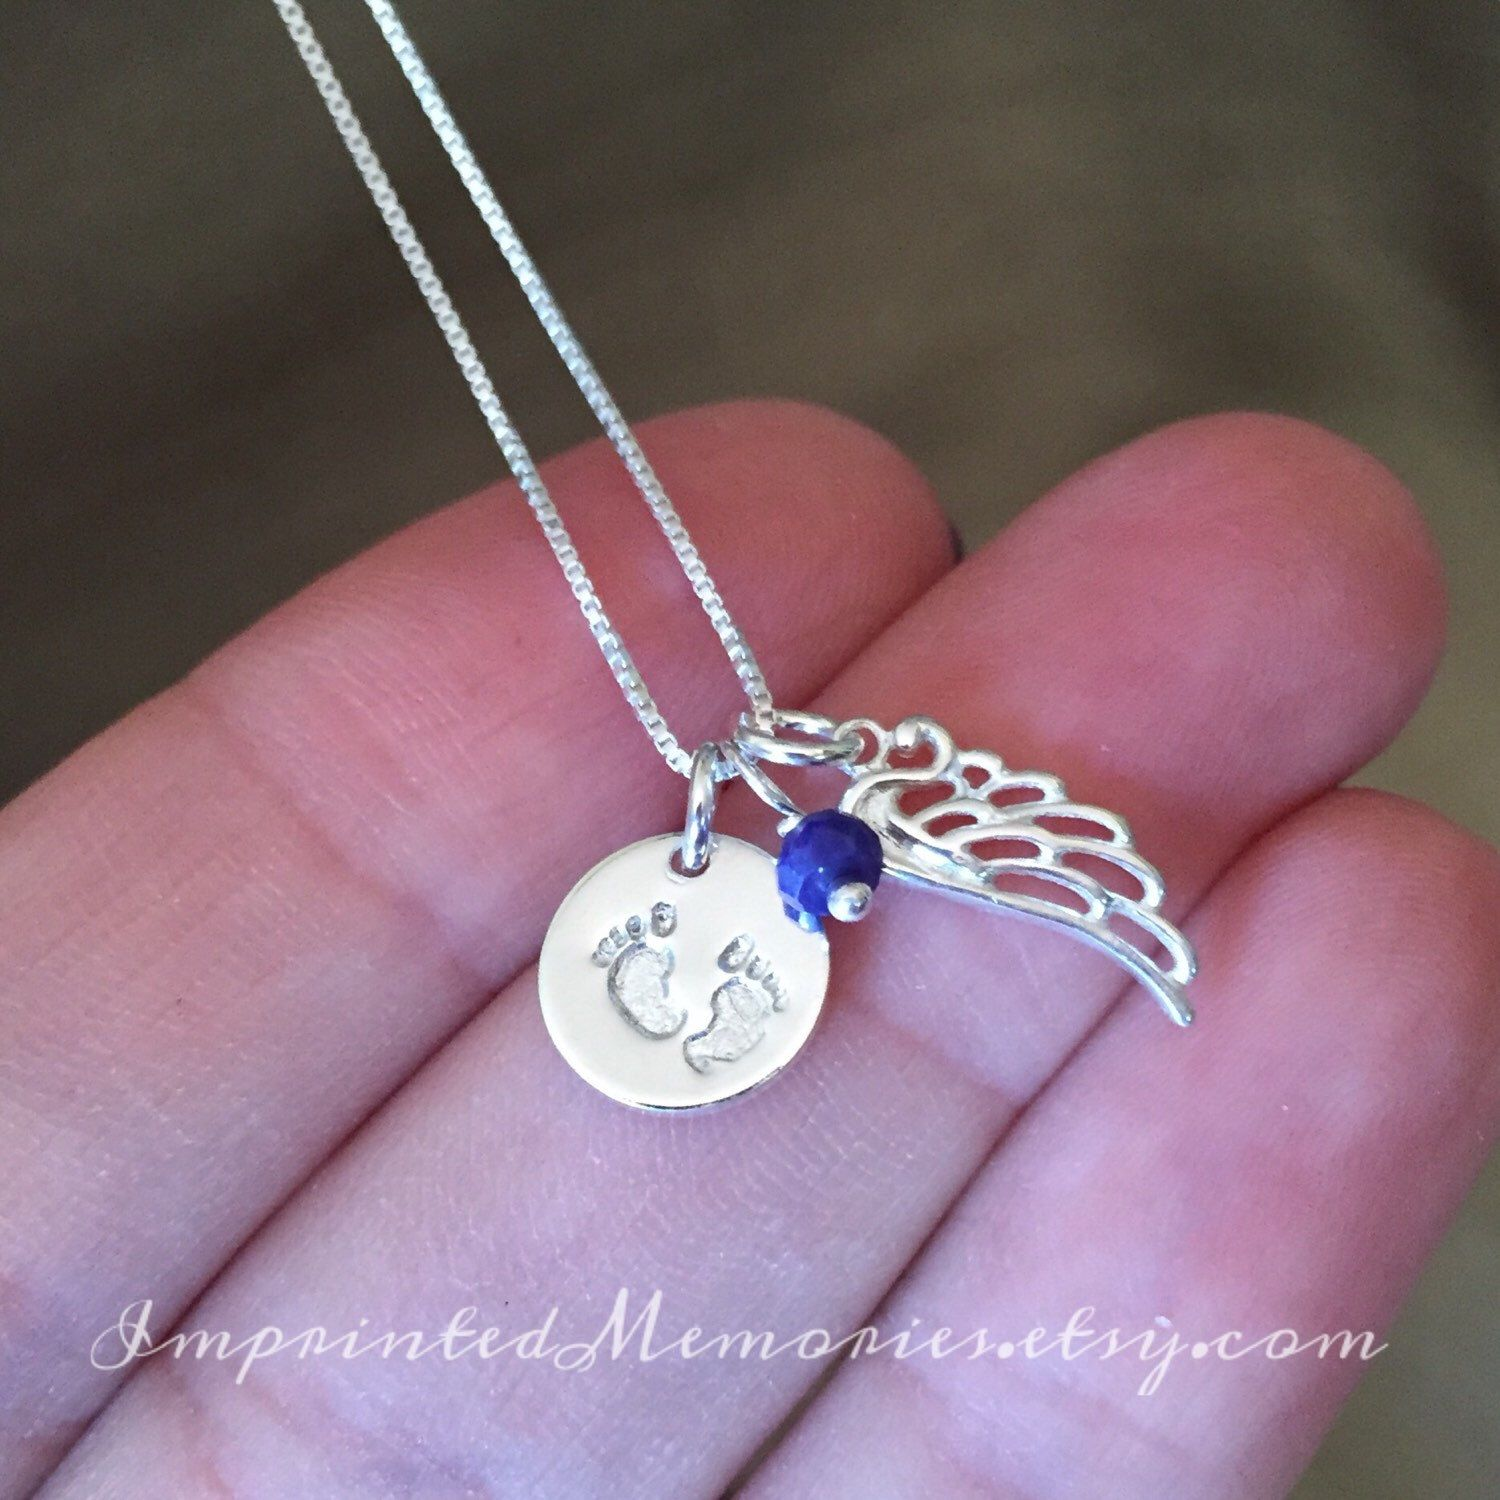 A personal favorite from my etsy shop httpsetsylisting in memory of a cat necklace tiny cat memorial necklace loss of a cat memorial jewelry my angel has whiskers necklace angel kitty aloadofball Images